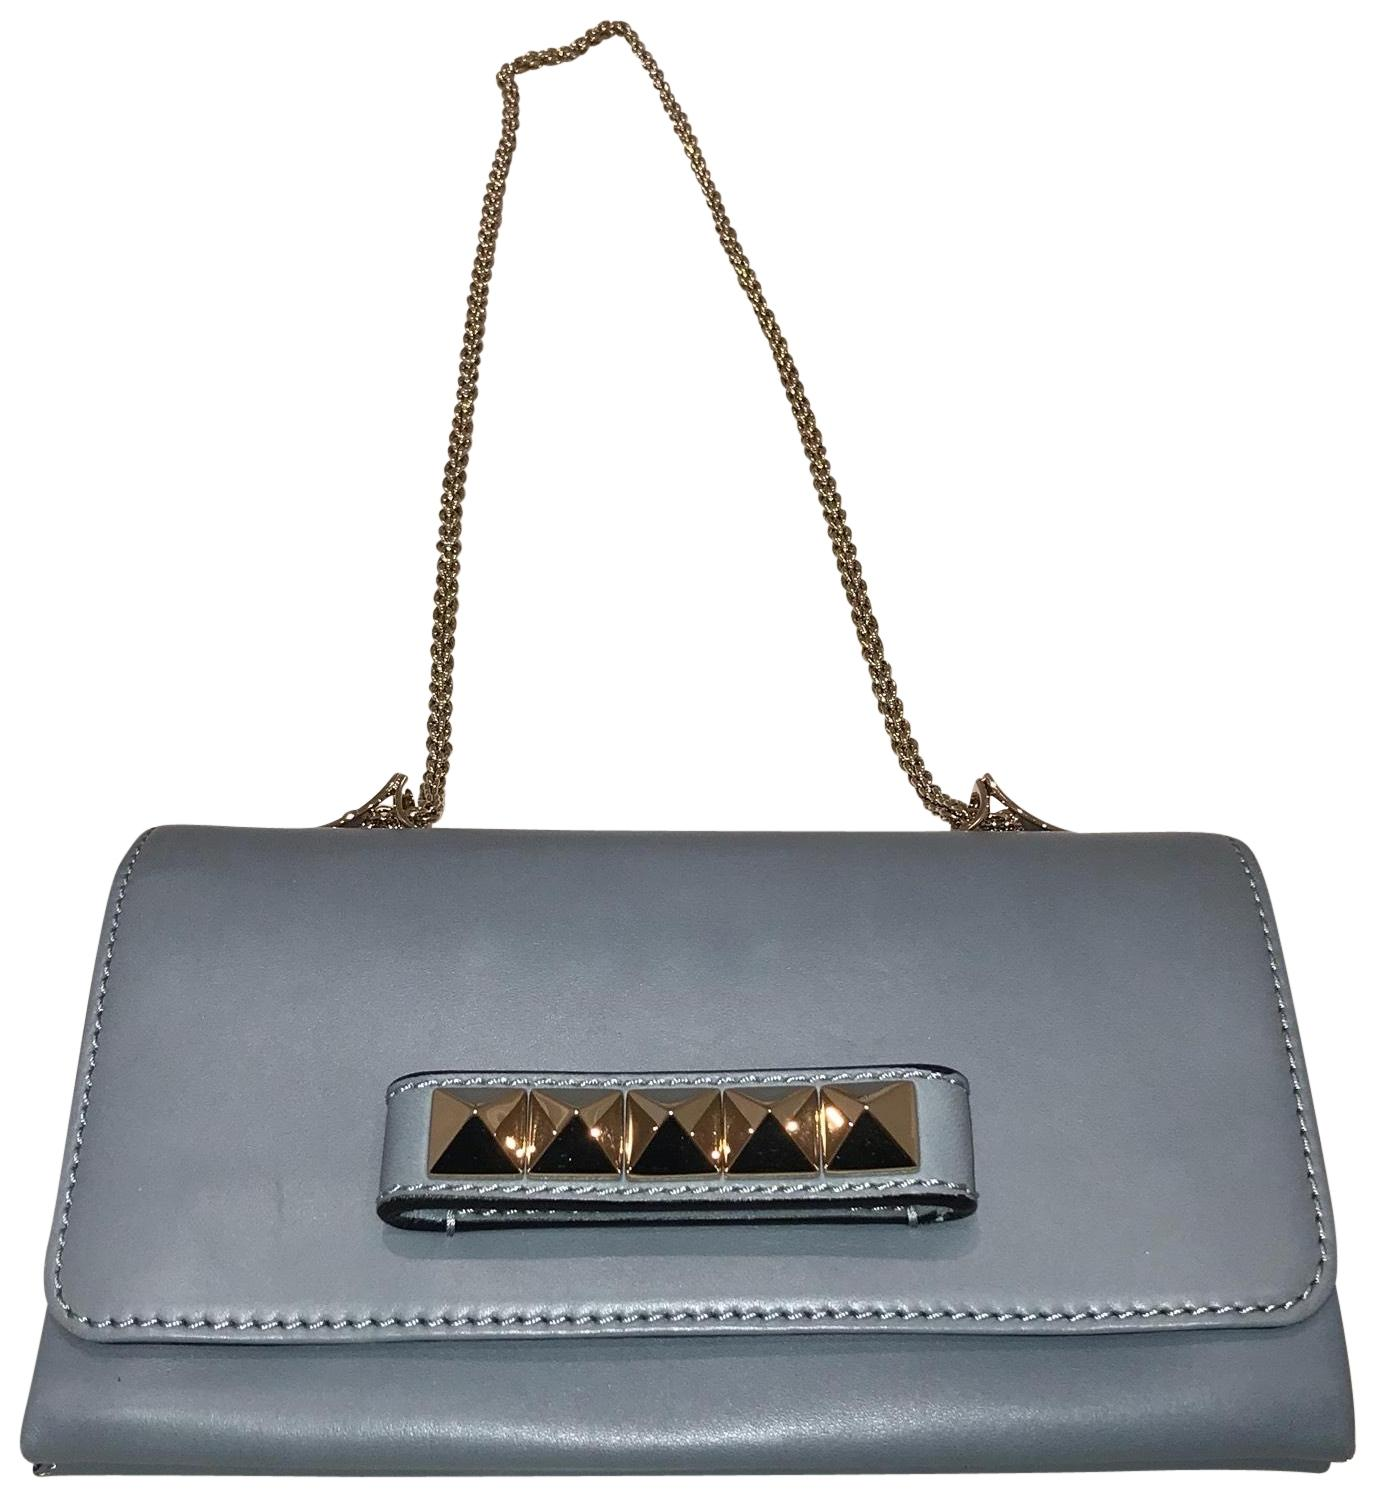 Looking For Sale Online Valentino Vavavoom Cloth Handbag Clearance Really Supply Online pA02PVuw